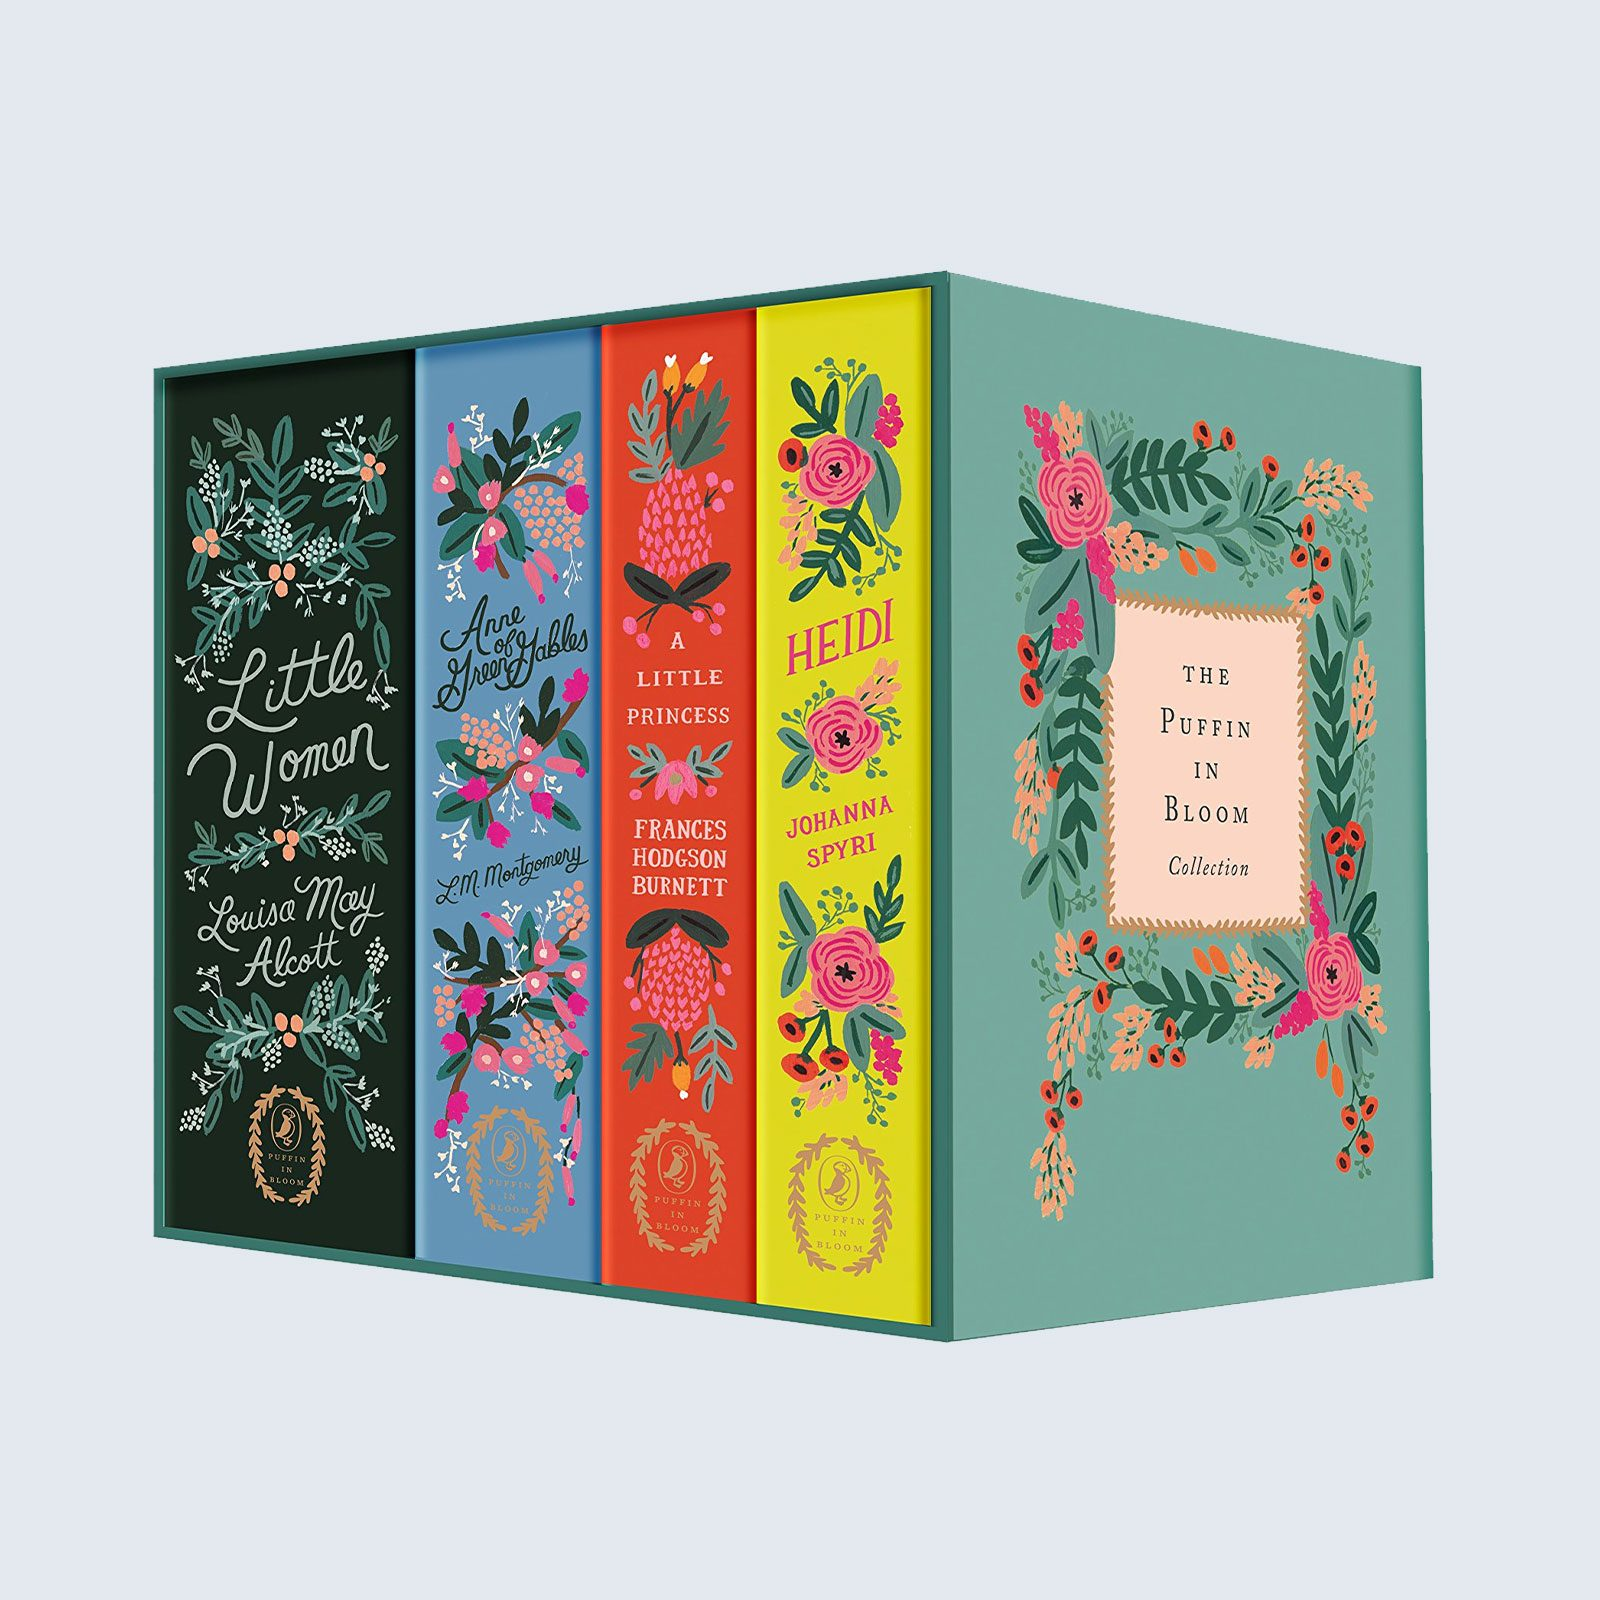 For the book nerd: The Puffin in Bloom Collection